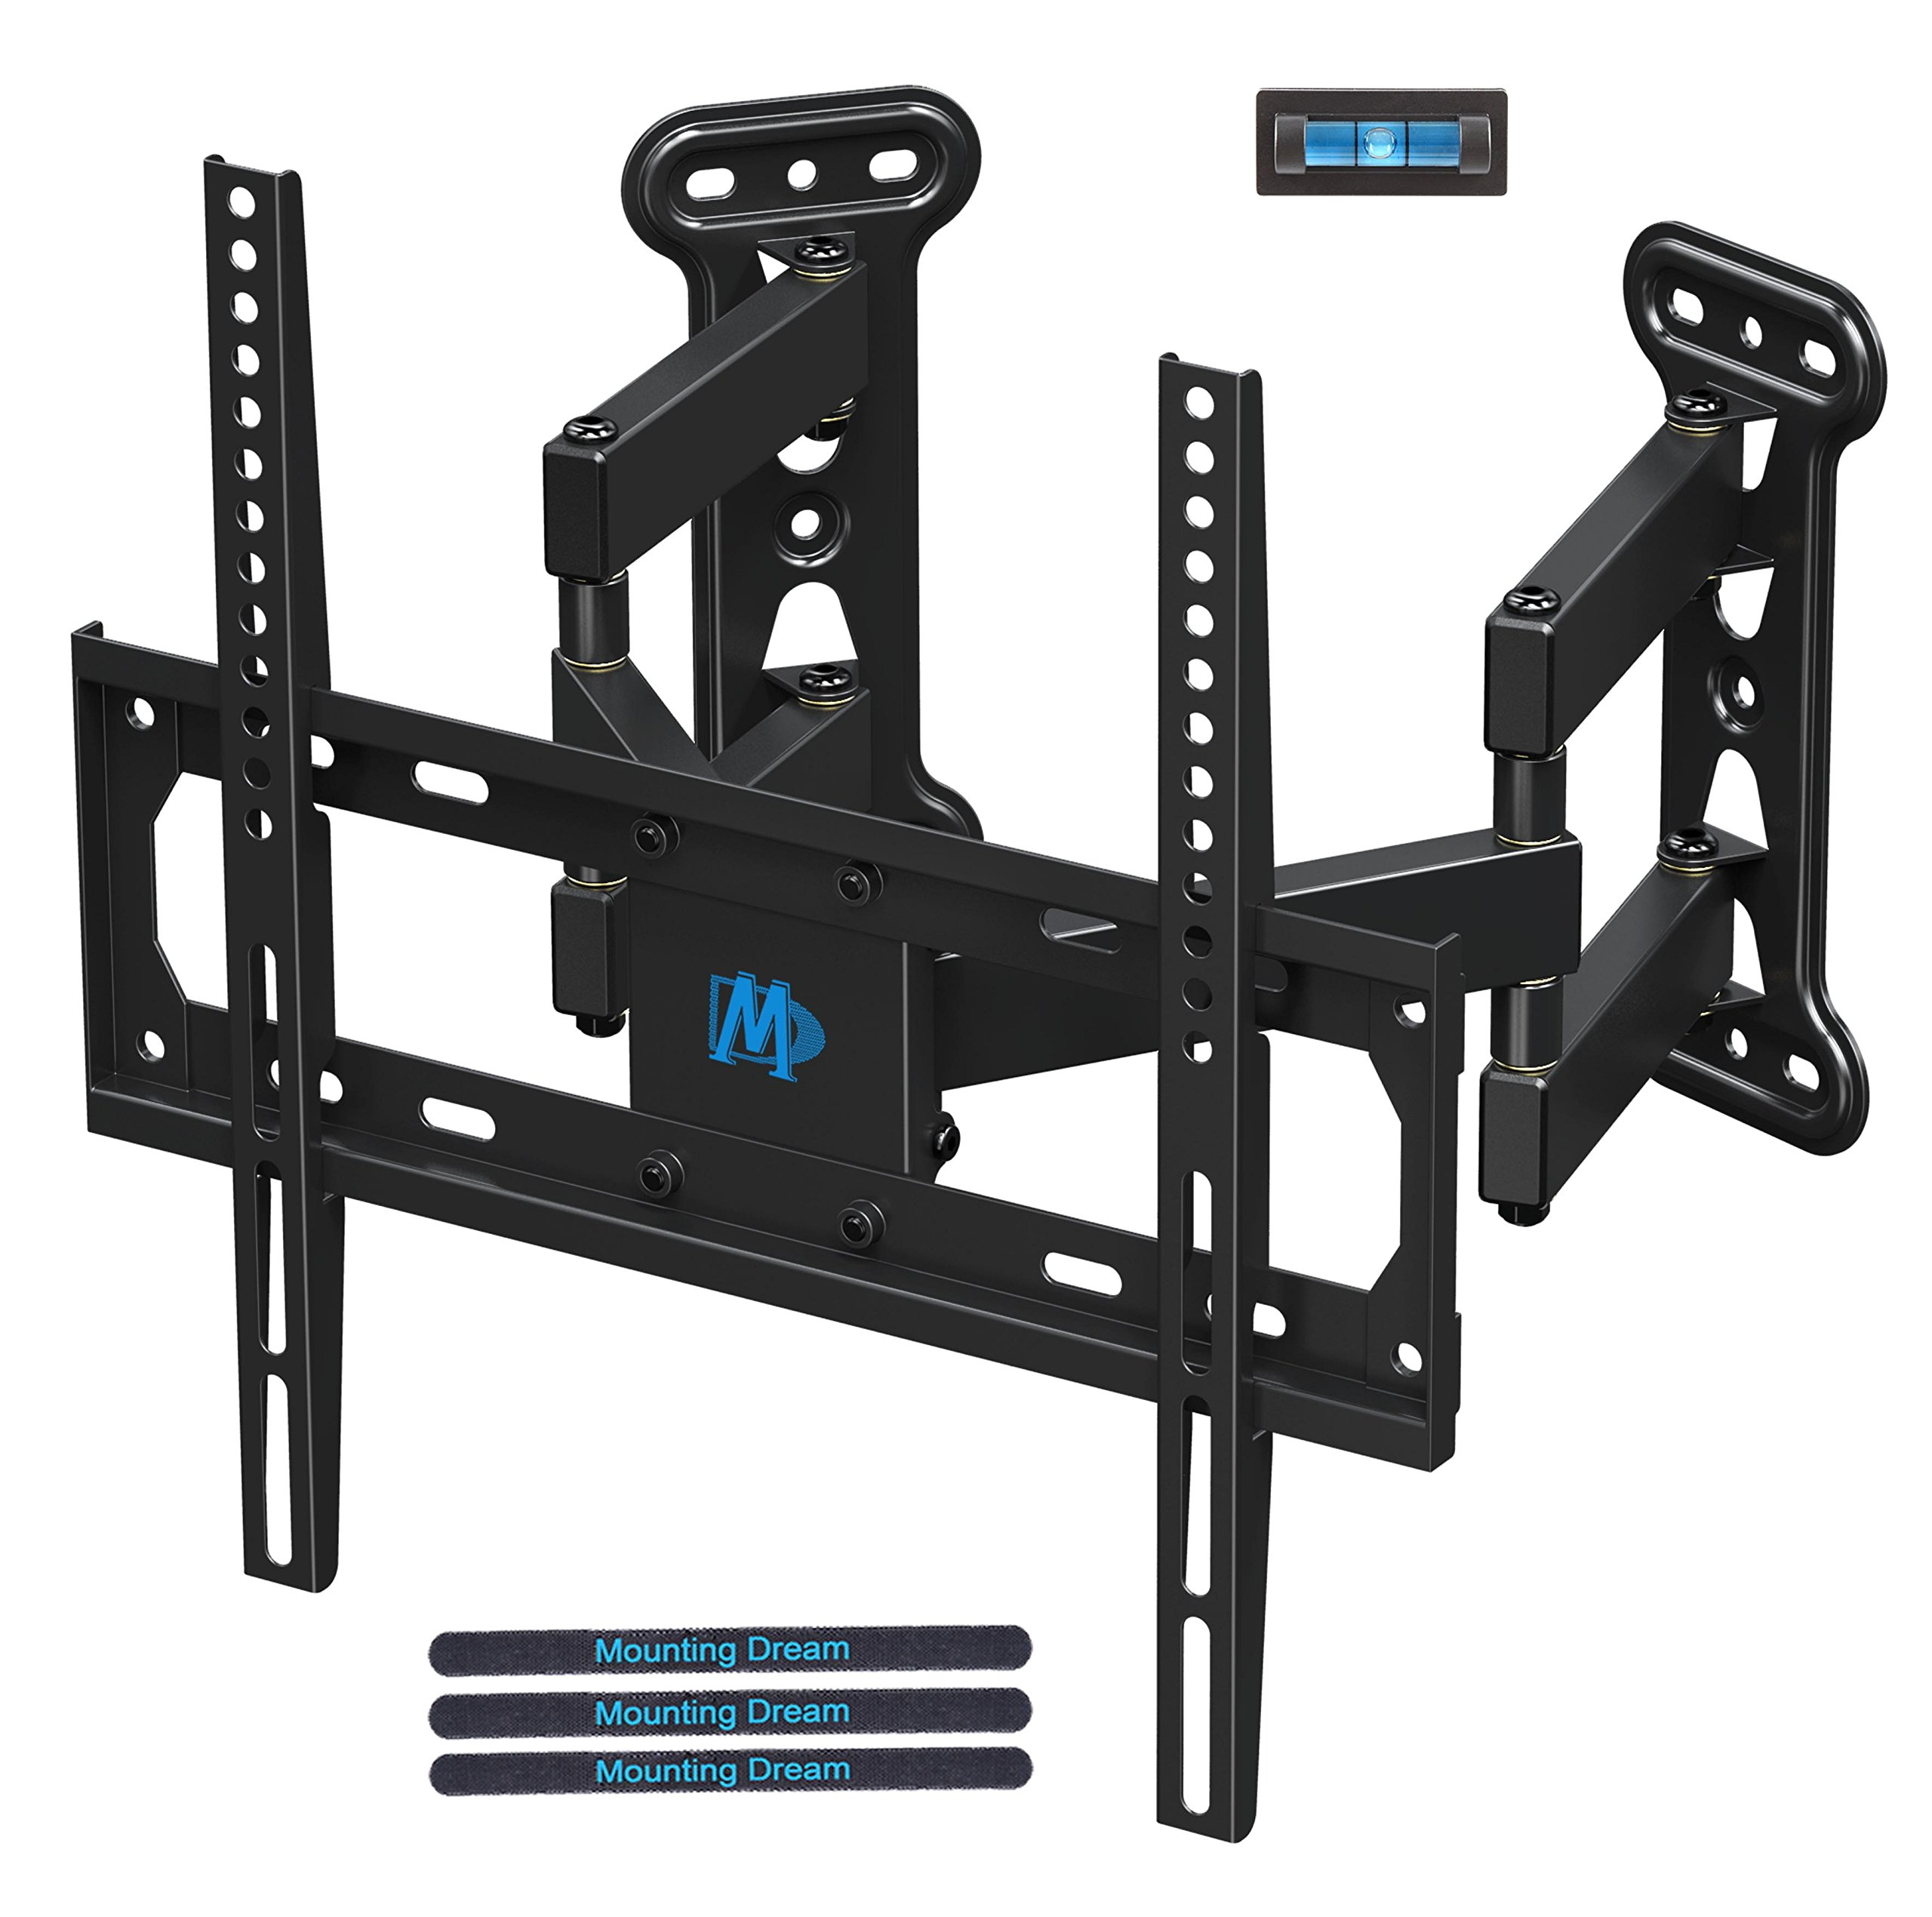 Mounting Dream MD2501 Corner TV Wall Mount Bracket for most 26-50 Inch LED, LCD, OLED Flat Panel Screen TVs with Full Motion Swivel Articulating Arms up to VESA 400x400mm and 60 LBS with Tilting